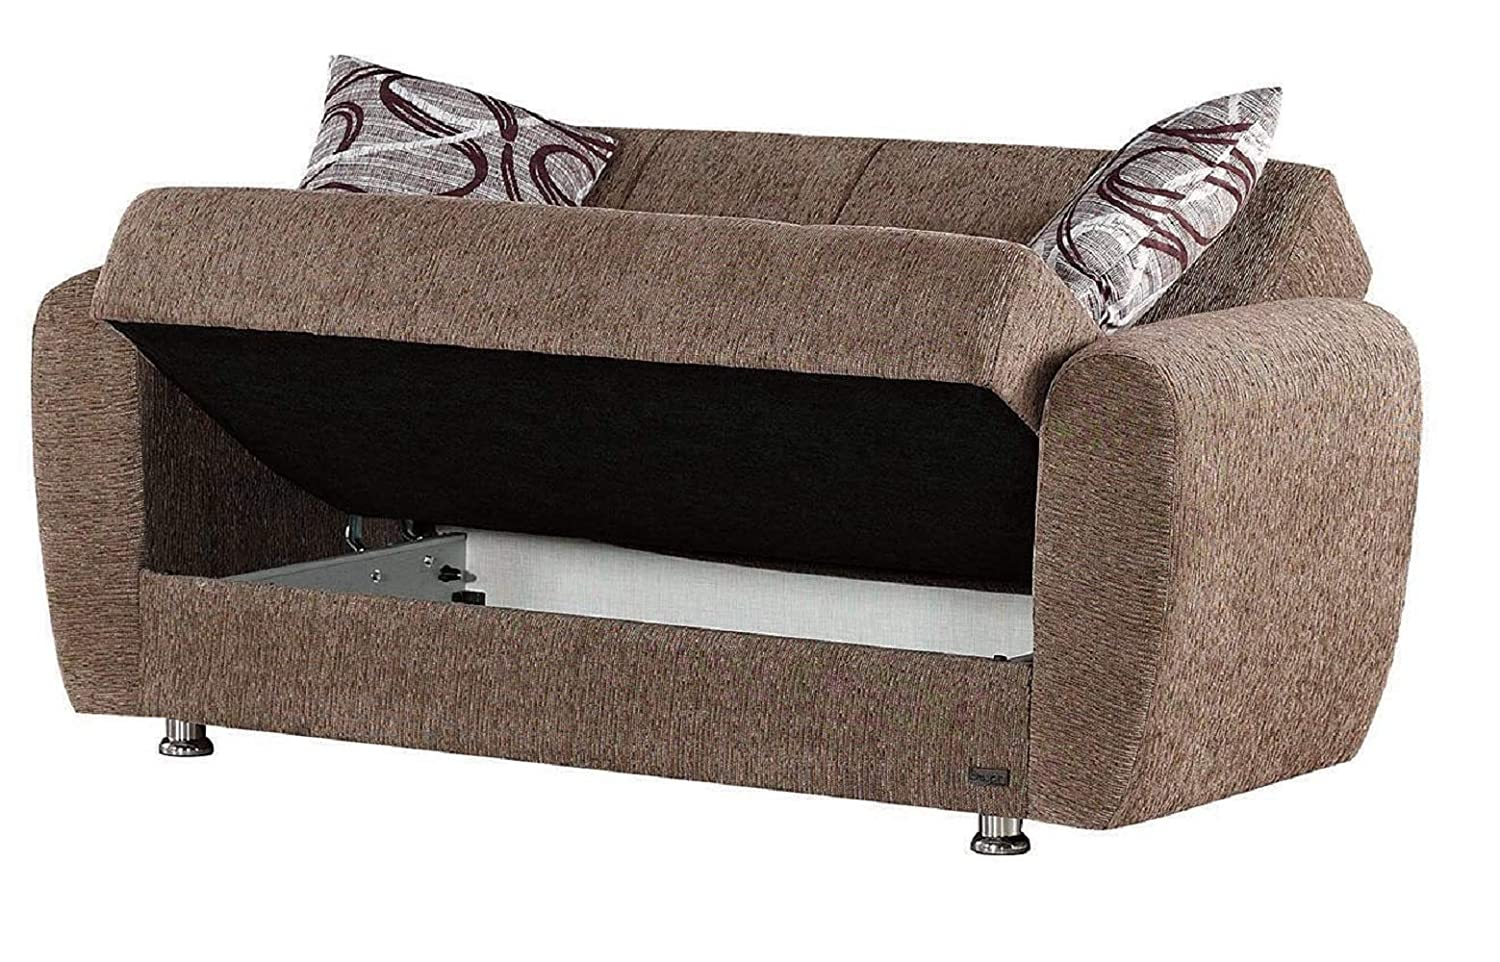 BEYAN Colorado Collection Guest Room Convertible Storage Loveseat with Storage Space, Includes 2 Pillows, Dark Brown